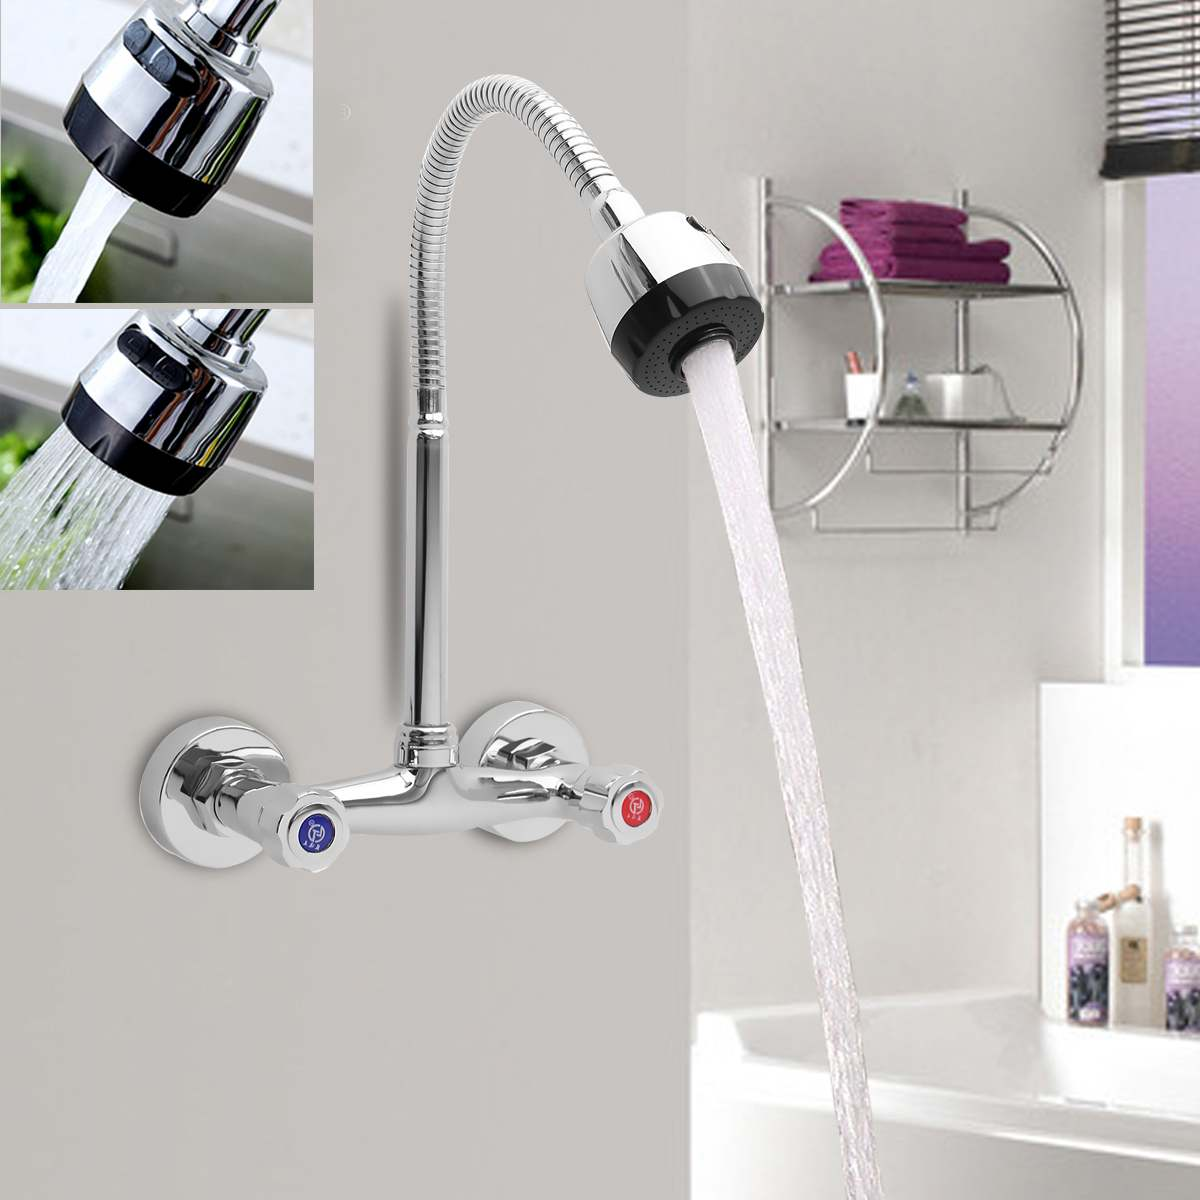 Xueqin 360Rotation Chrome Modern Dual Handle Mixer Tap Cold And Hot Water Wall Mounted Pull Down Kitchen Sink Spray Faucet